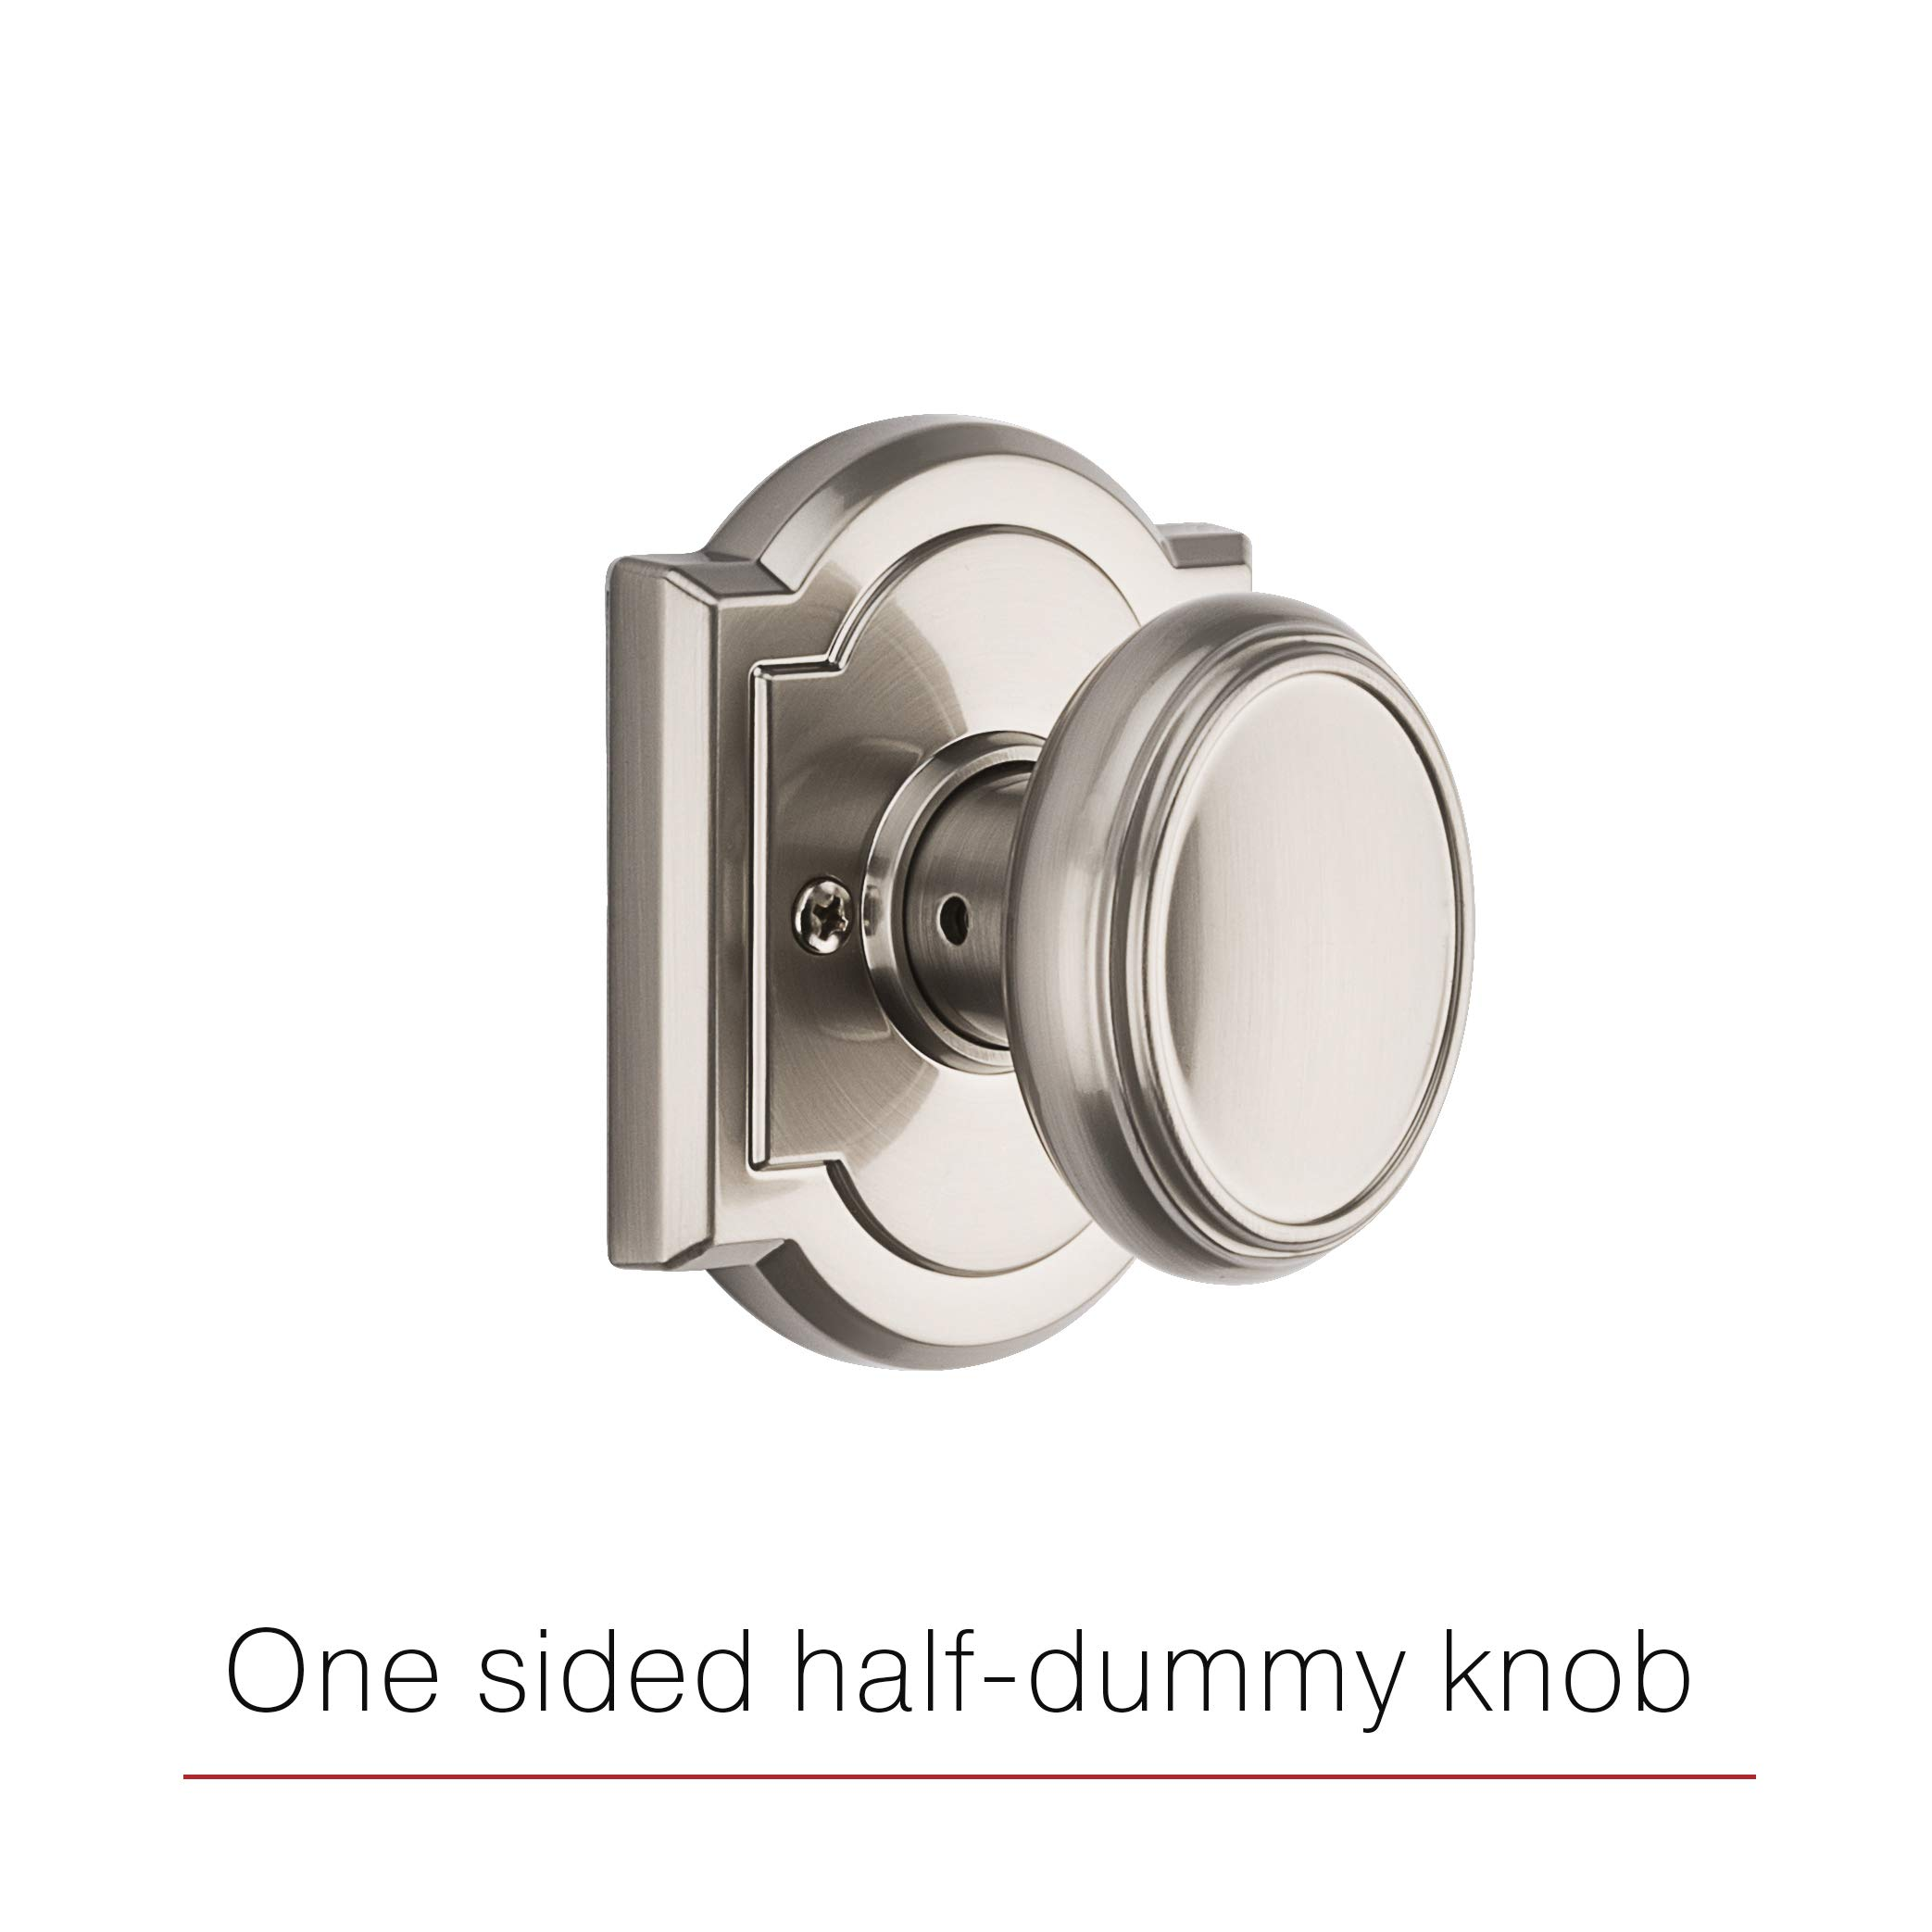 Baldwin Prestige Carnaby Half-Dummy Knob in Satin Nickel by Baldwin (Image #4)